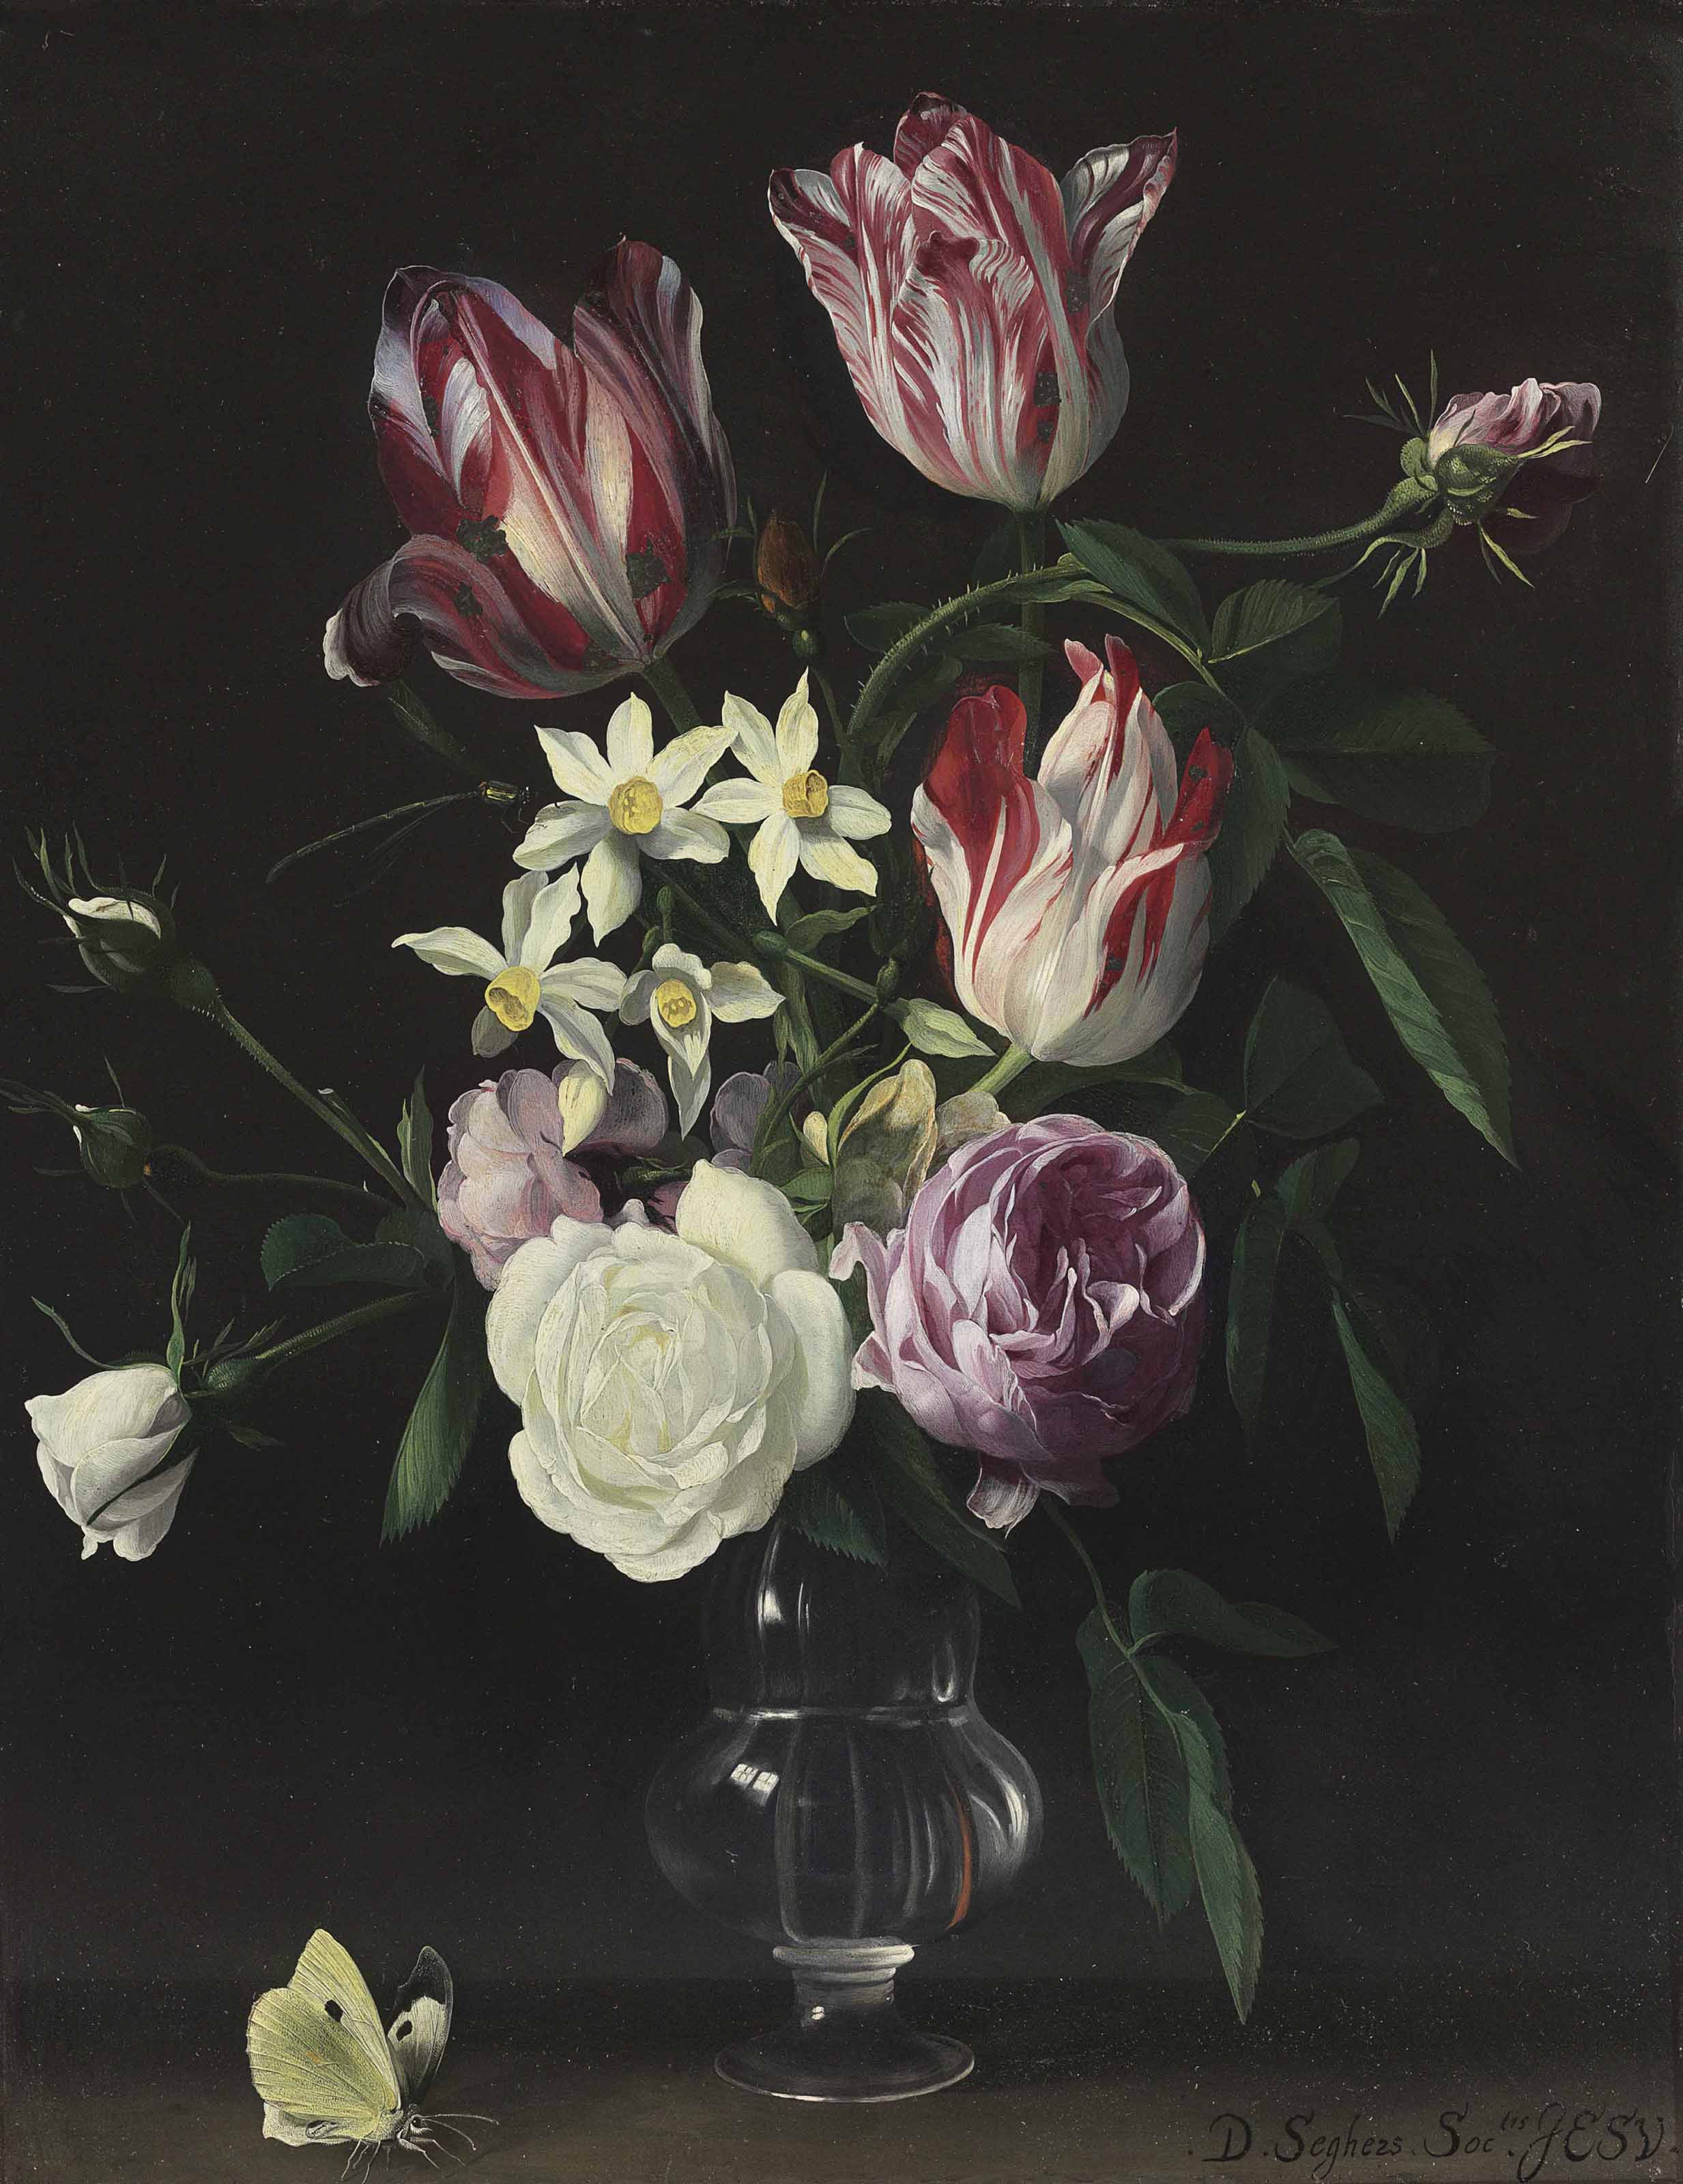 https://www.christies.com/img/LotImages/2017/NYR/2017_NYR_14277_0017_000(daniel_seghers_roses_tulips_and_narcissi_in_a_glass_vase_with_a_butter).jpg